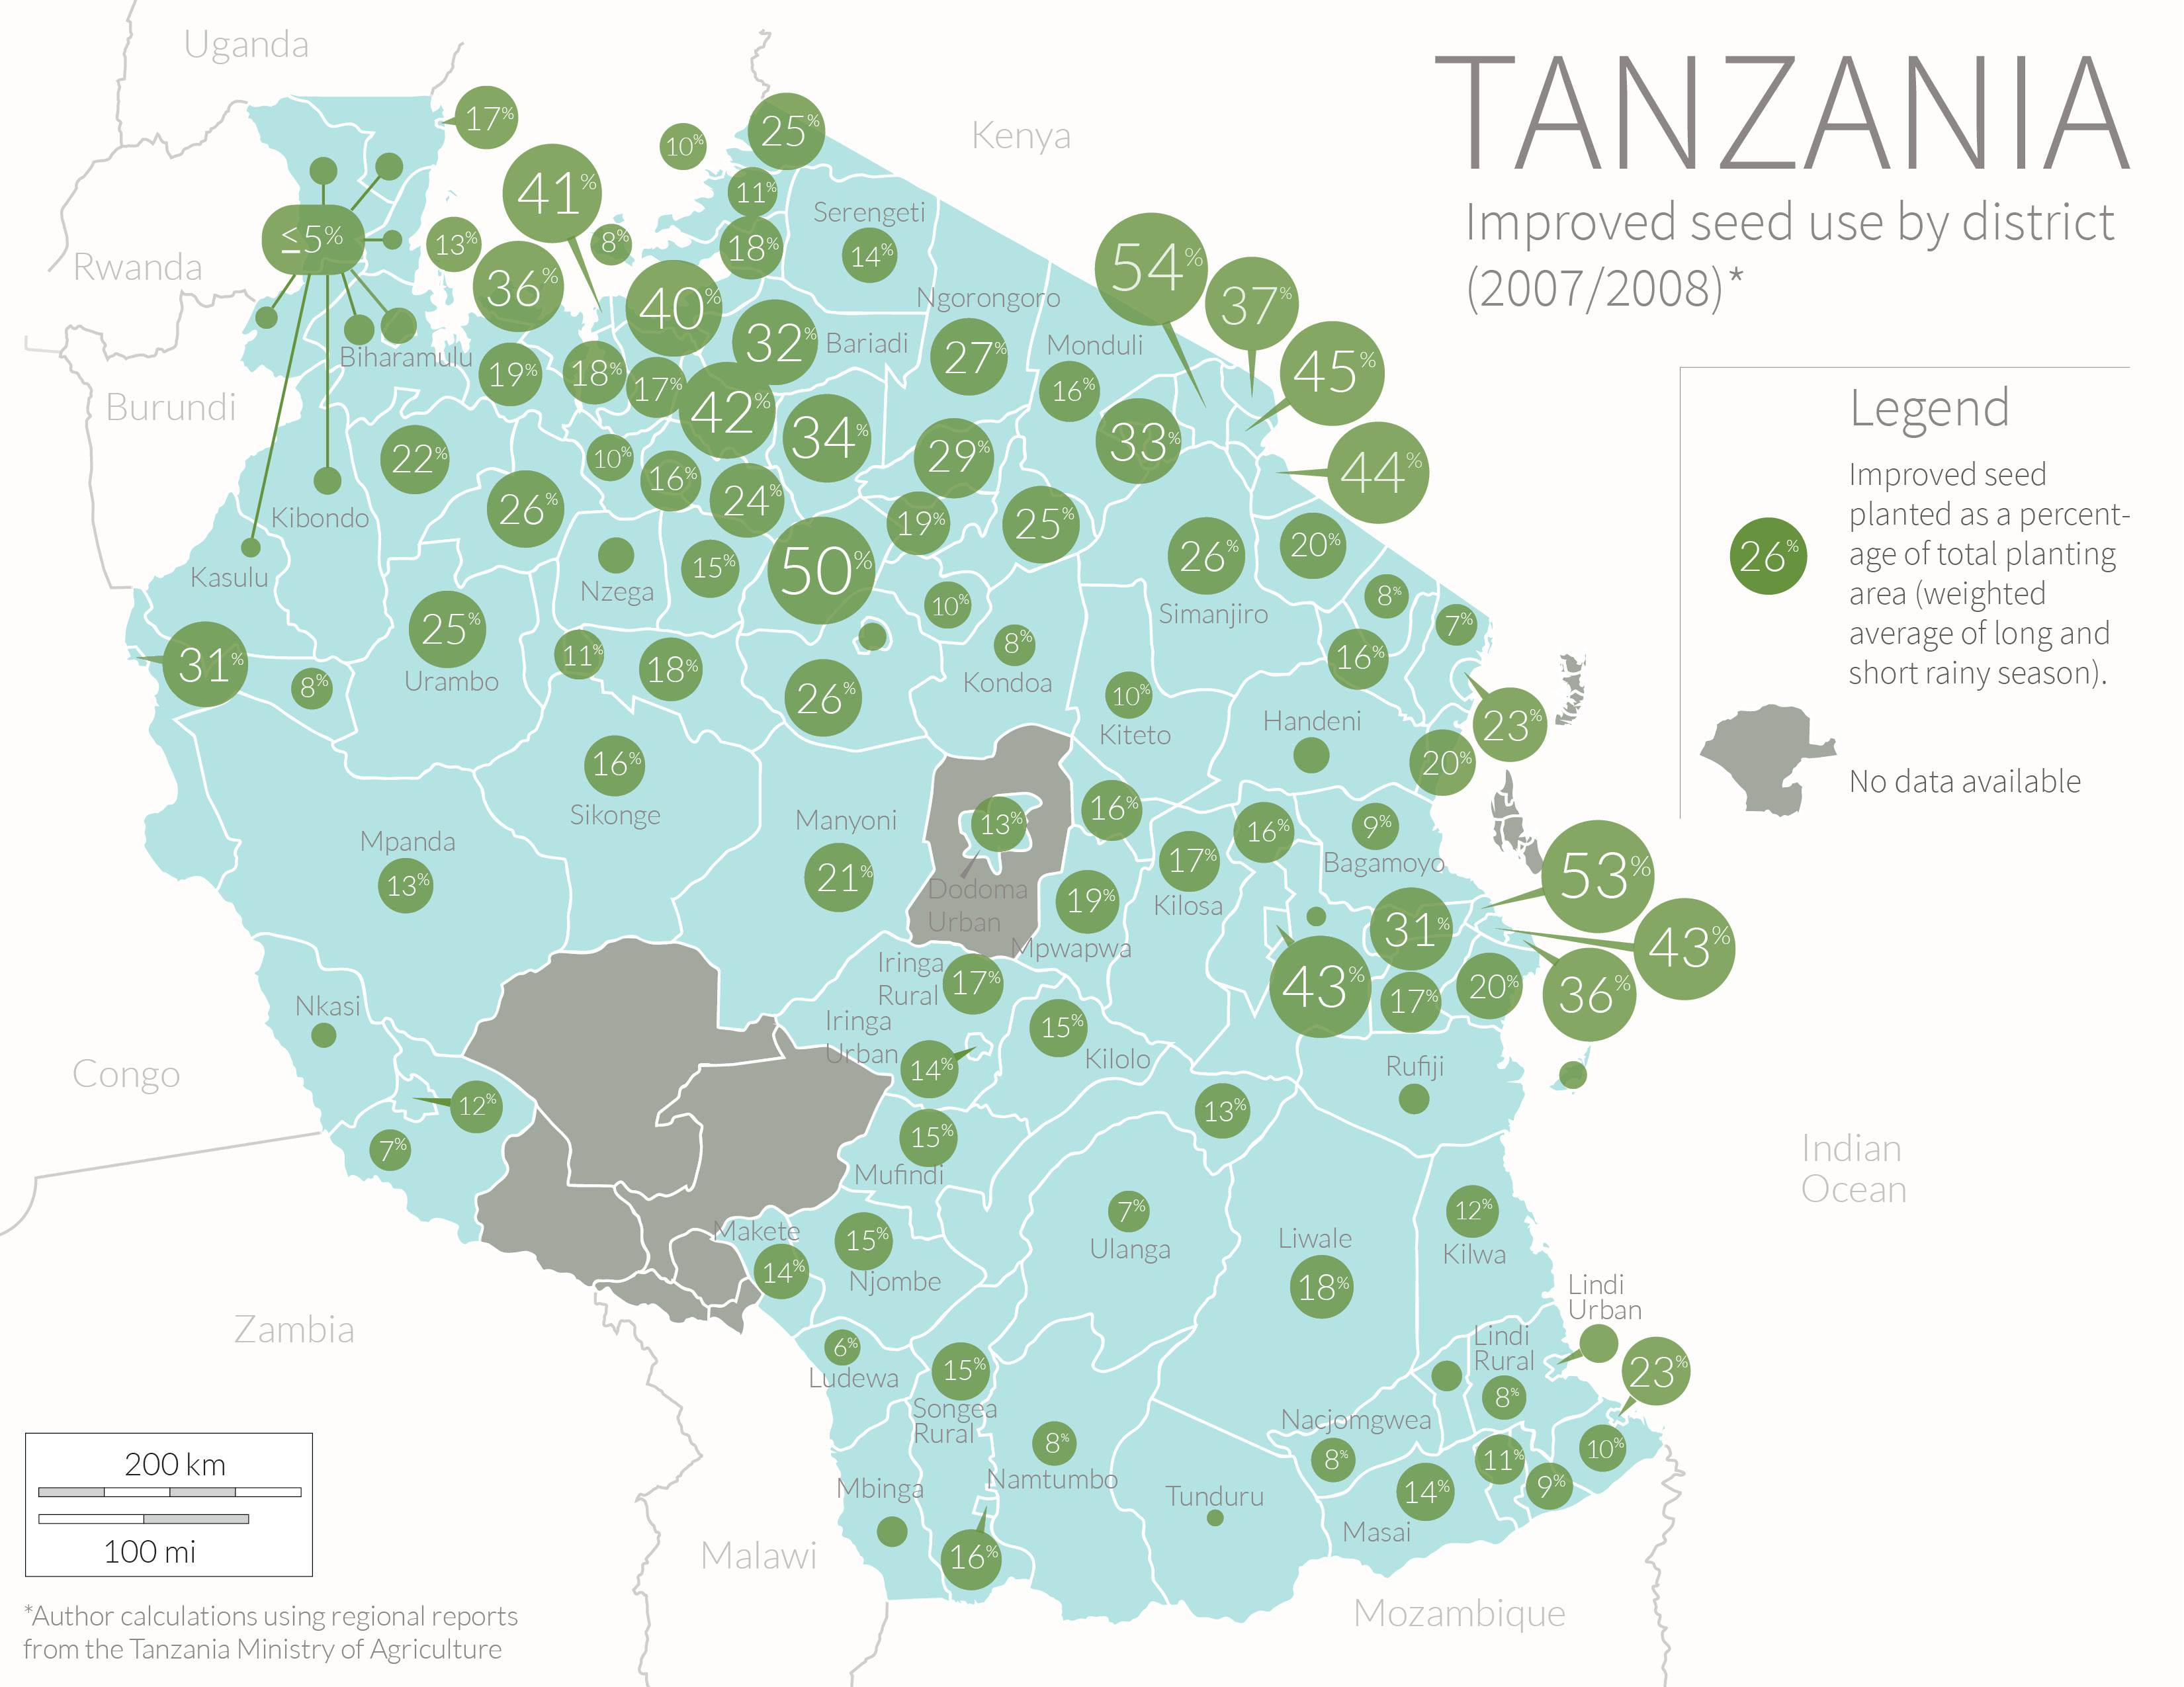 Tanzania Seed Map – James McCammon